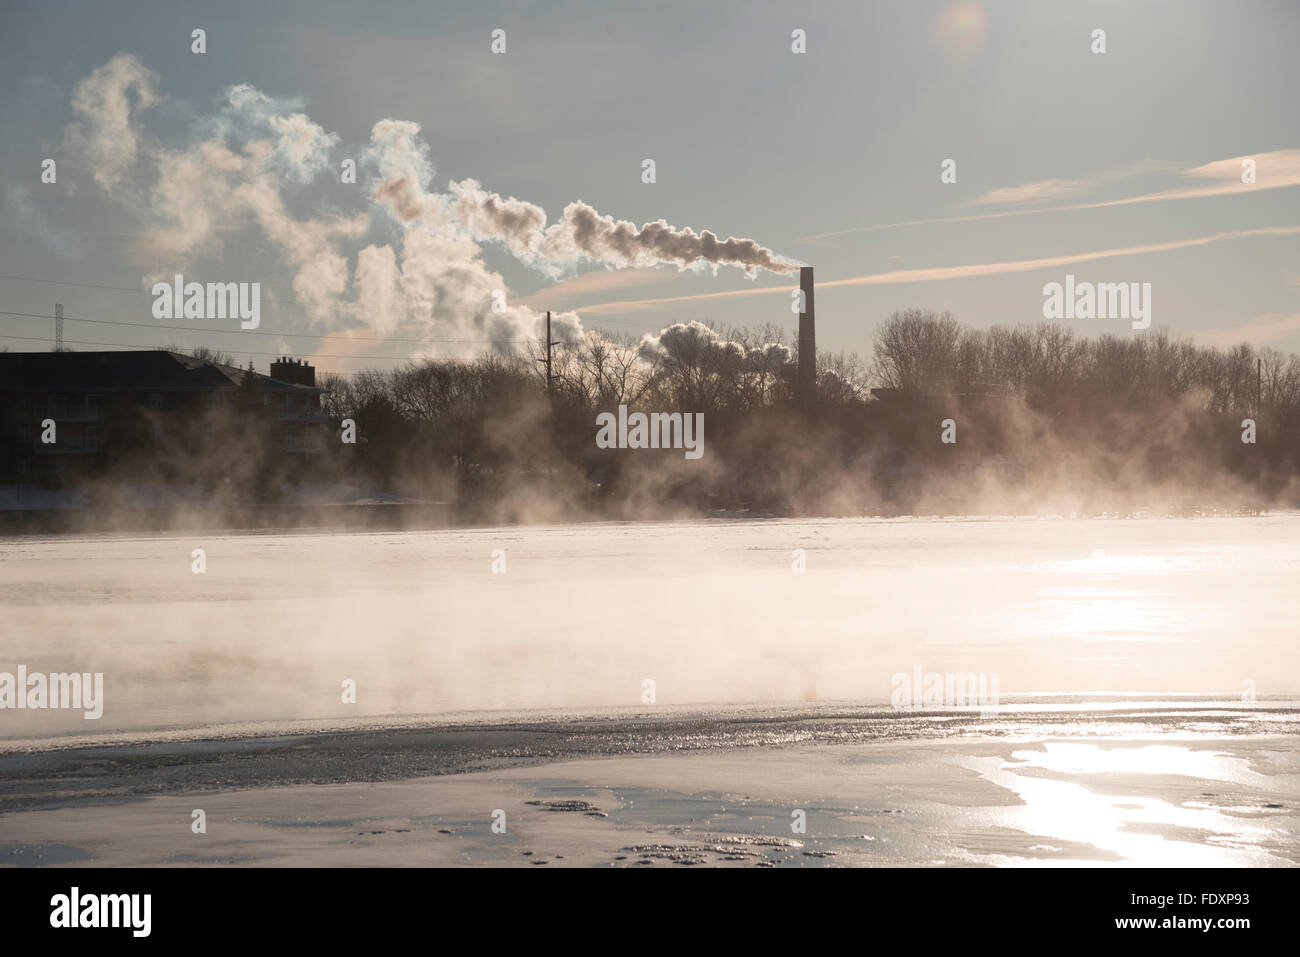 Steam rises off the water of the river and smoke and pollution puff out of a large coal smokestack on a cold winter - Stock Image